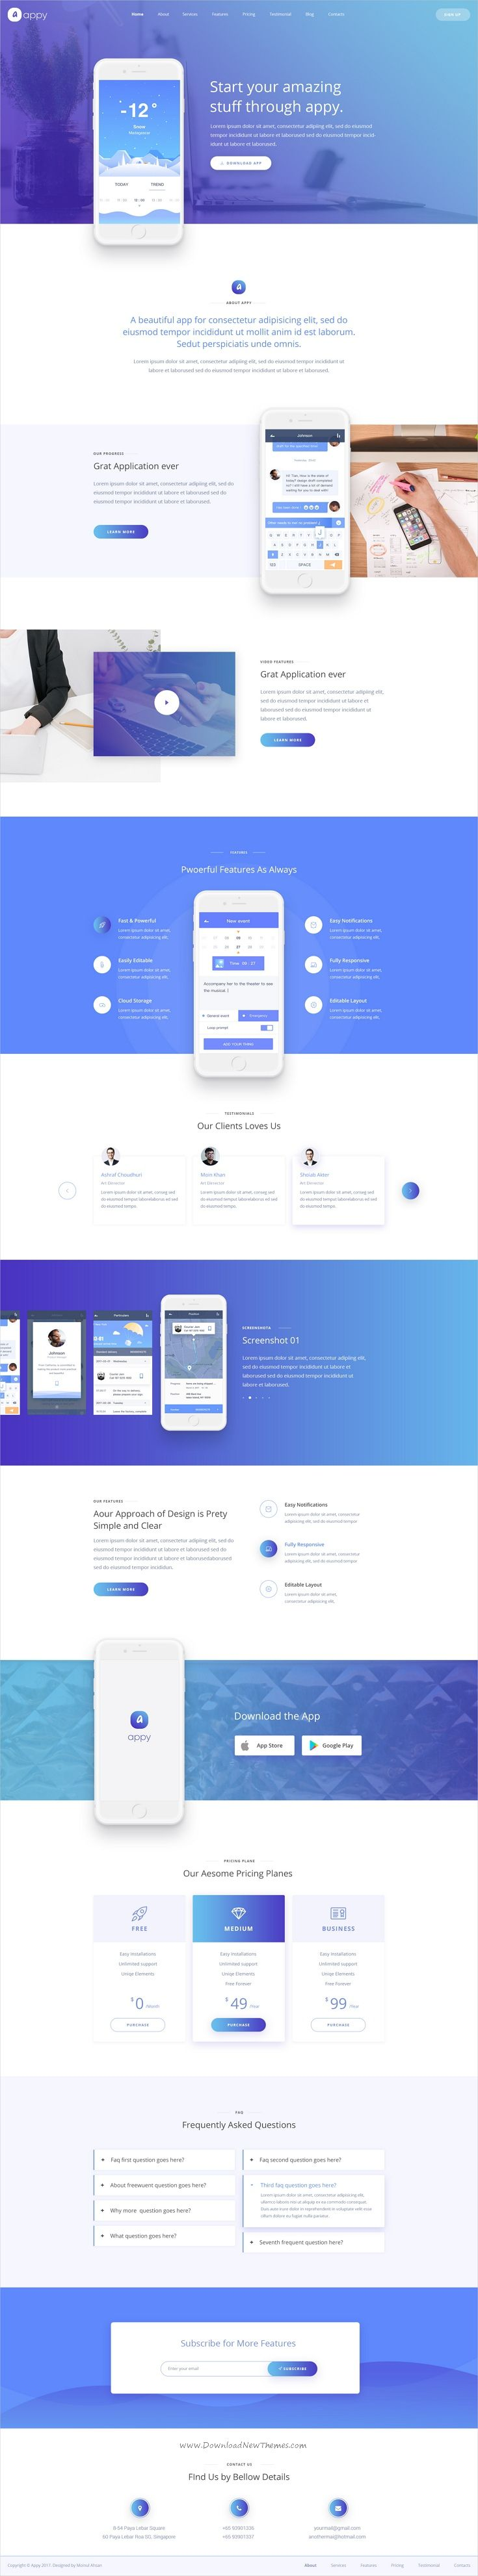 Appy is a wonderful #Photoshop template for #app landing page website download now➩ https://themeforest.net/item/appy-app-landing-psd-template/19732944?ref=Datasata